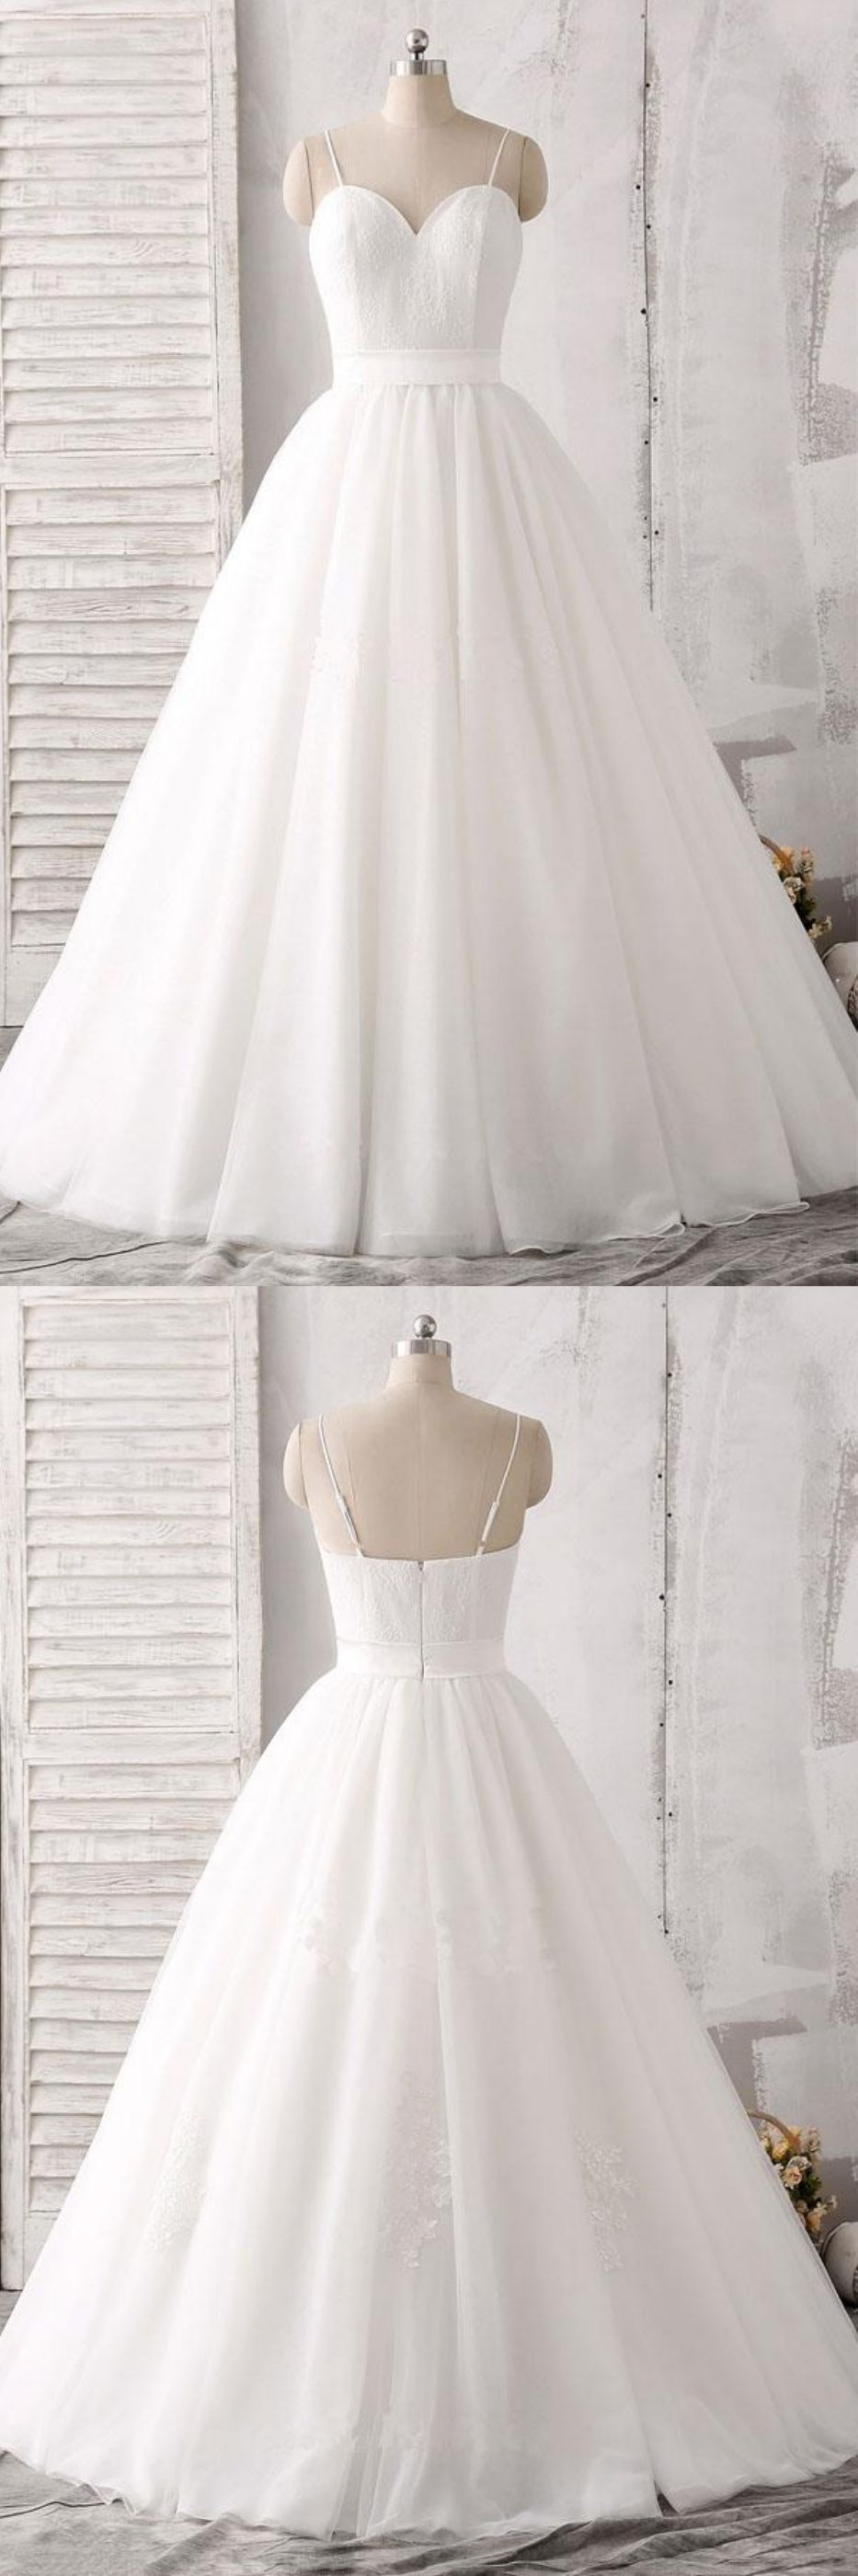 Open back wedding dresses lace  Spaghrtti Straps Floor Length Wedding Gown WD  Dreaming